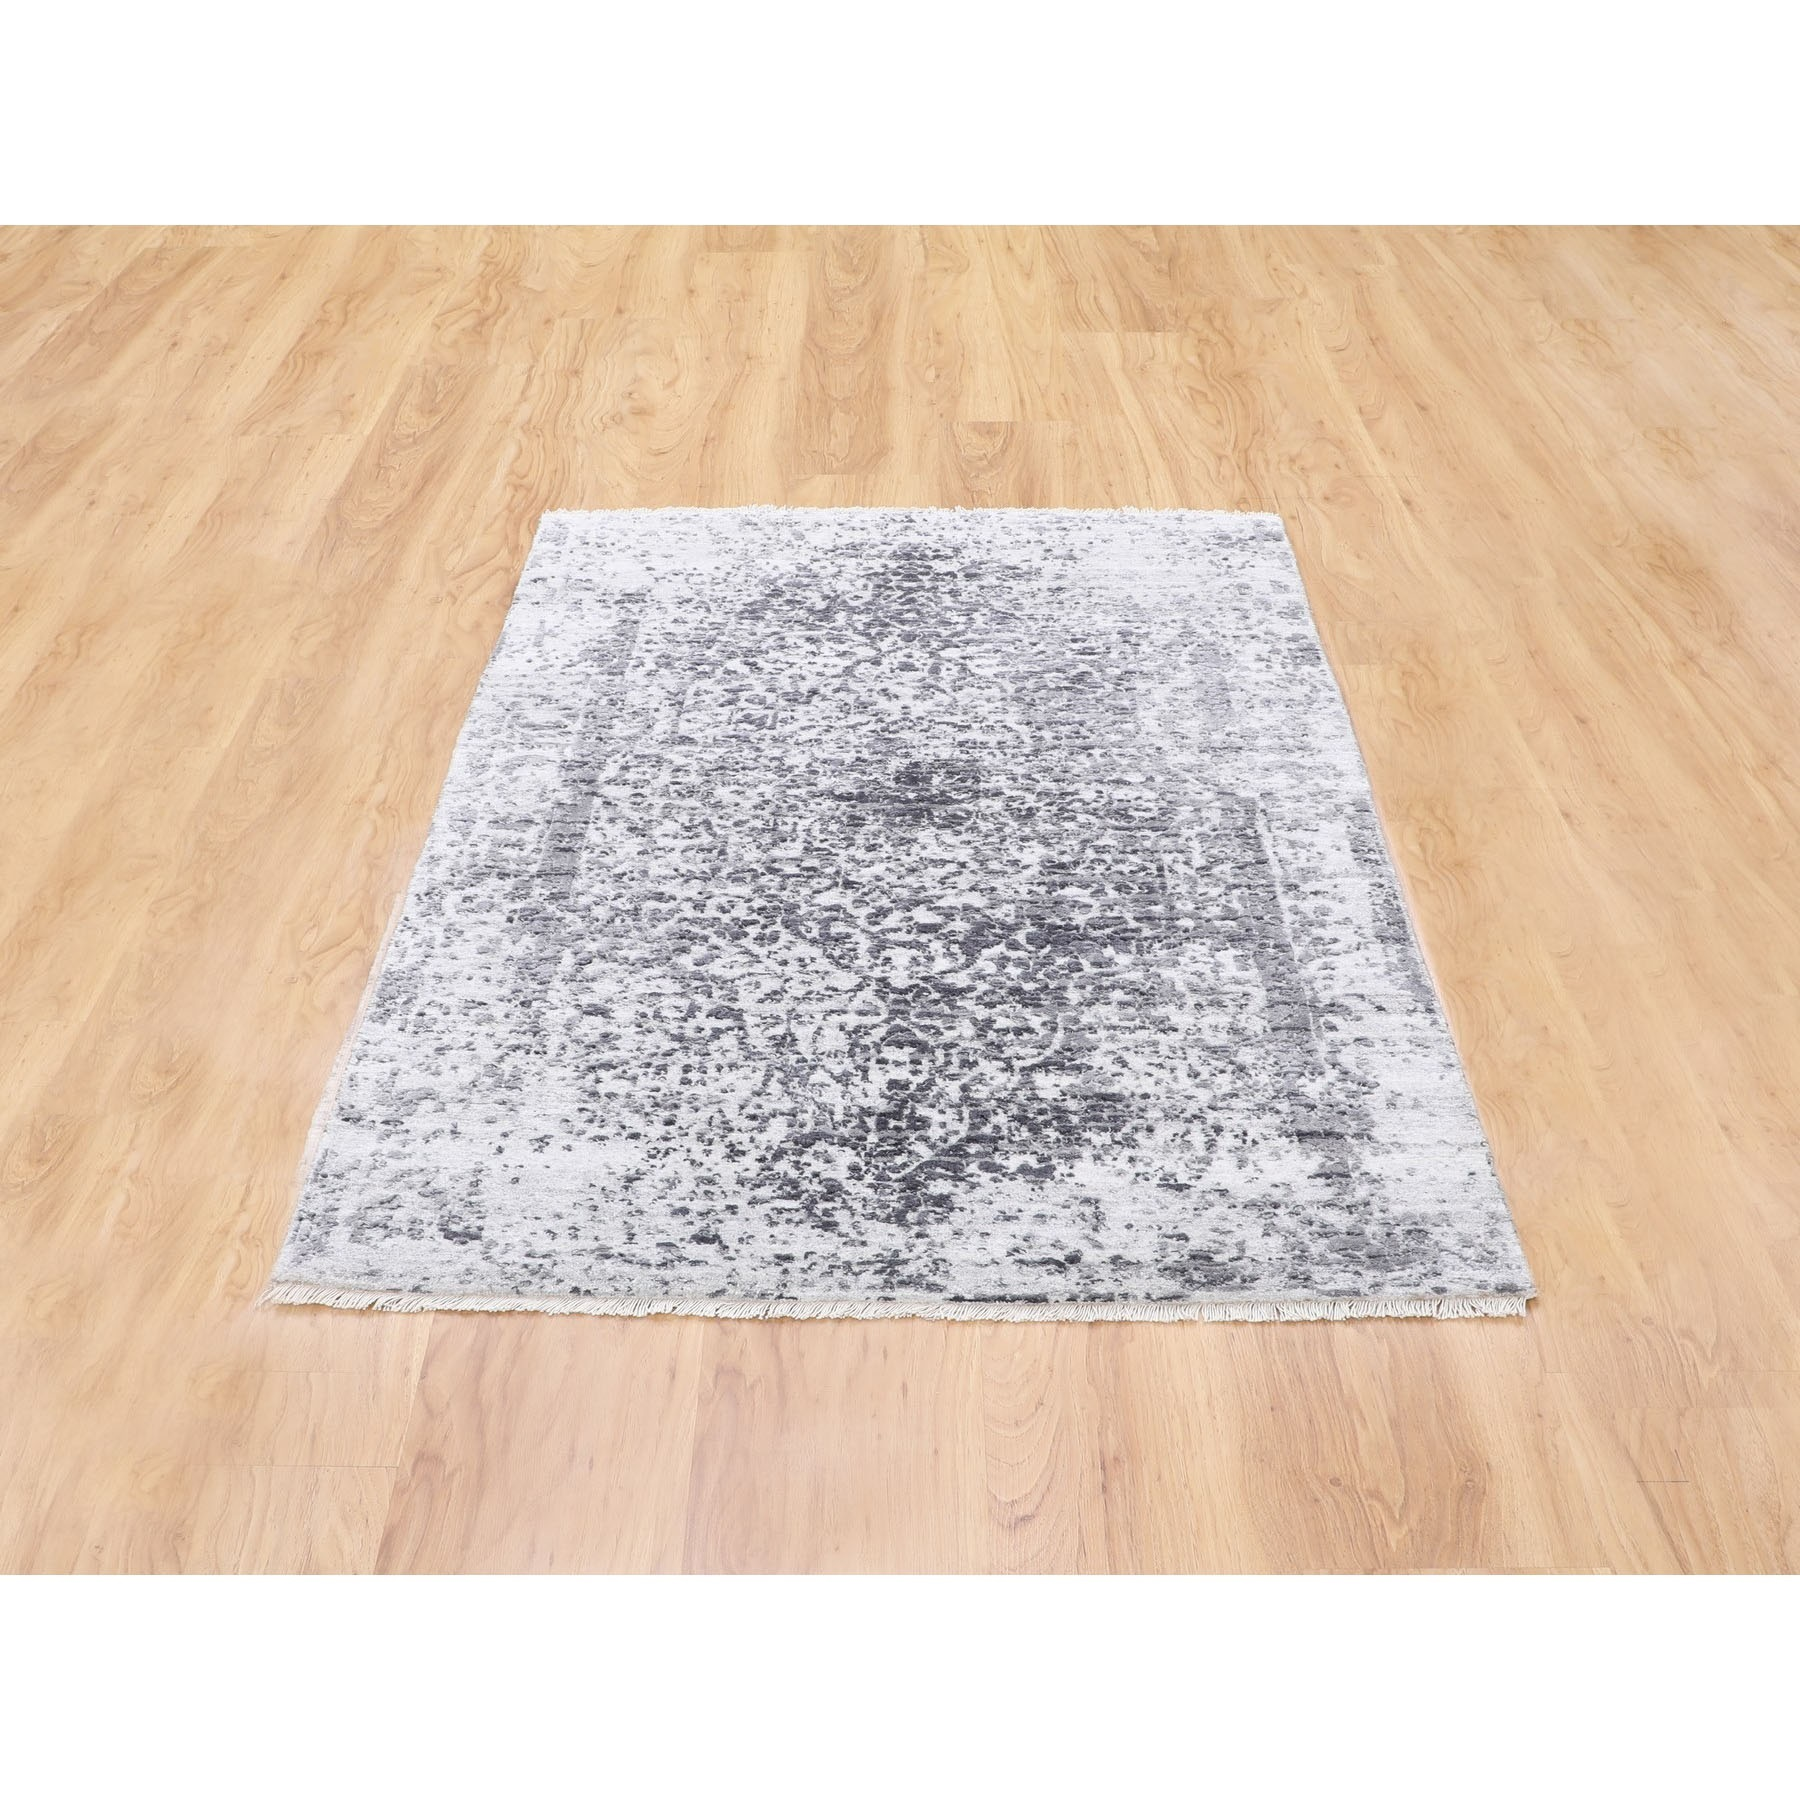 3'x5' Broken Persian Design Wool and Pure Silk Hand Knotted Oriental Rug